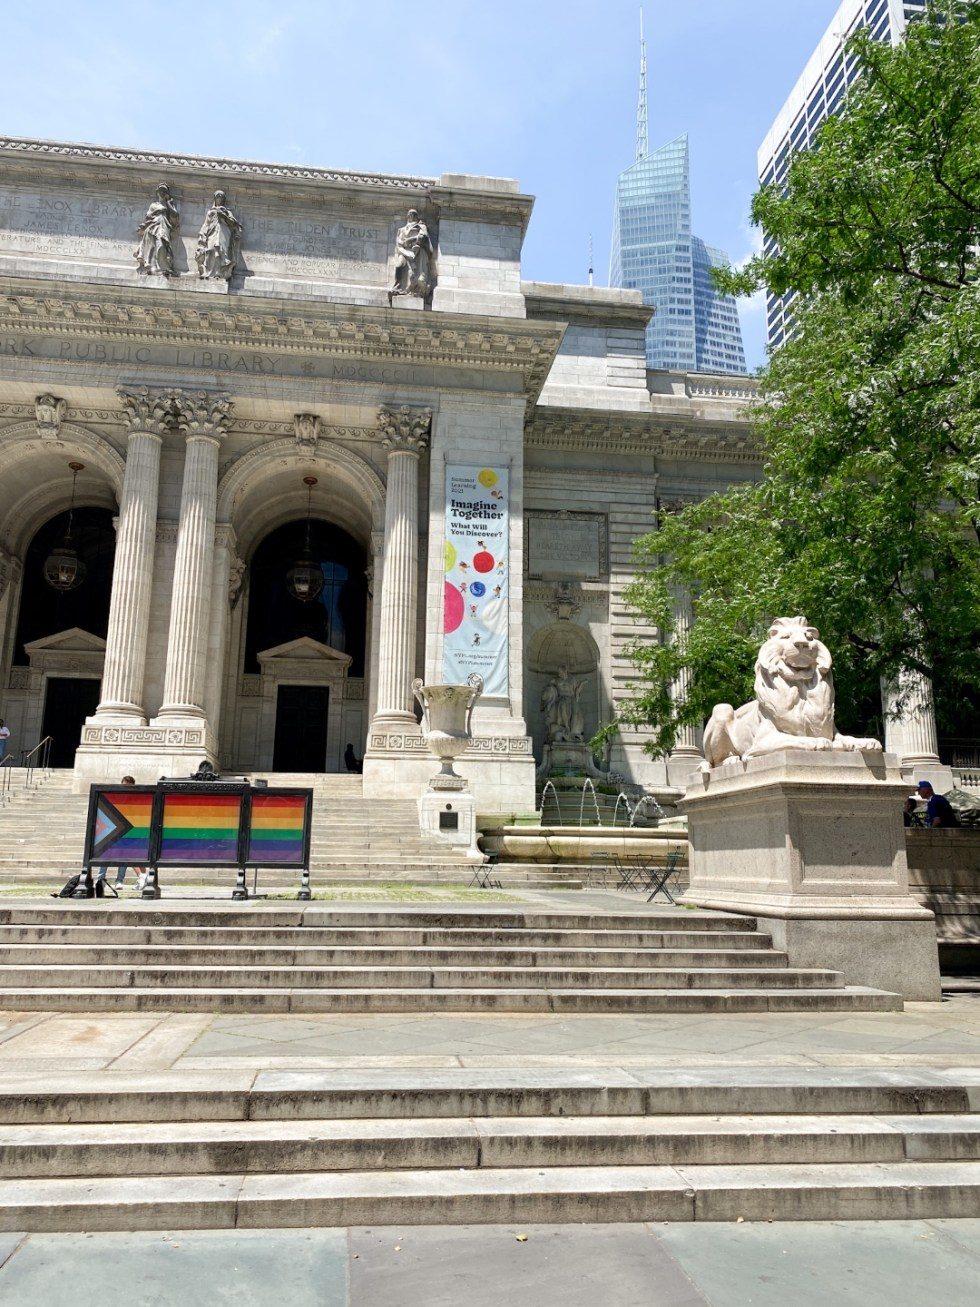 NYC Summer Weekend: Things to Do in NYC in the Summer - I'm Fixin' To - @imfixintoblog   NYC Summer Weekend by popular NC travel blog, I'm Fixin' To: image of the NYC library.